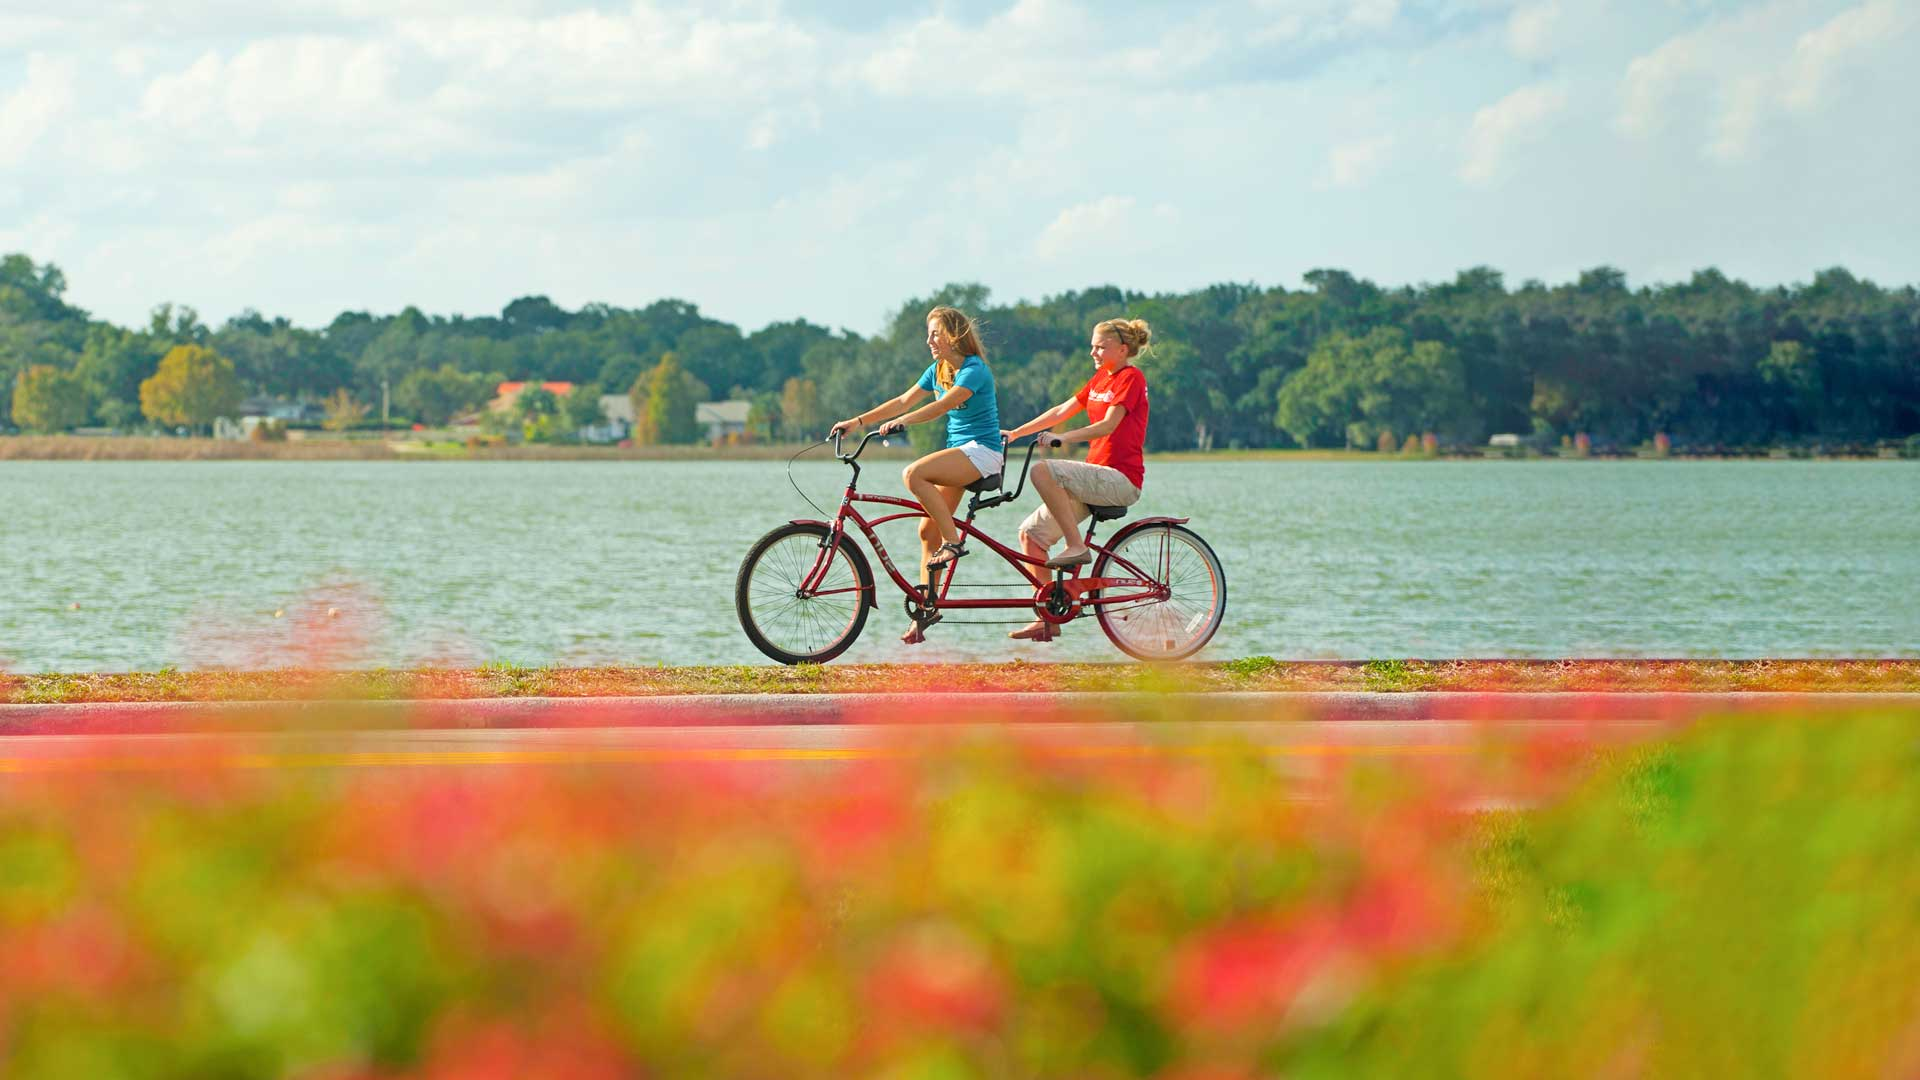 students enjoying a bike ride around lake hollingworth in lakeland, florida